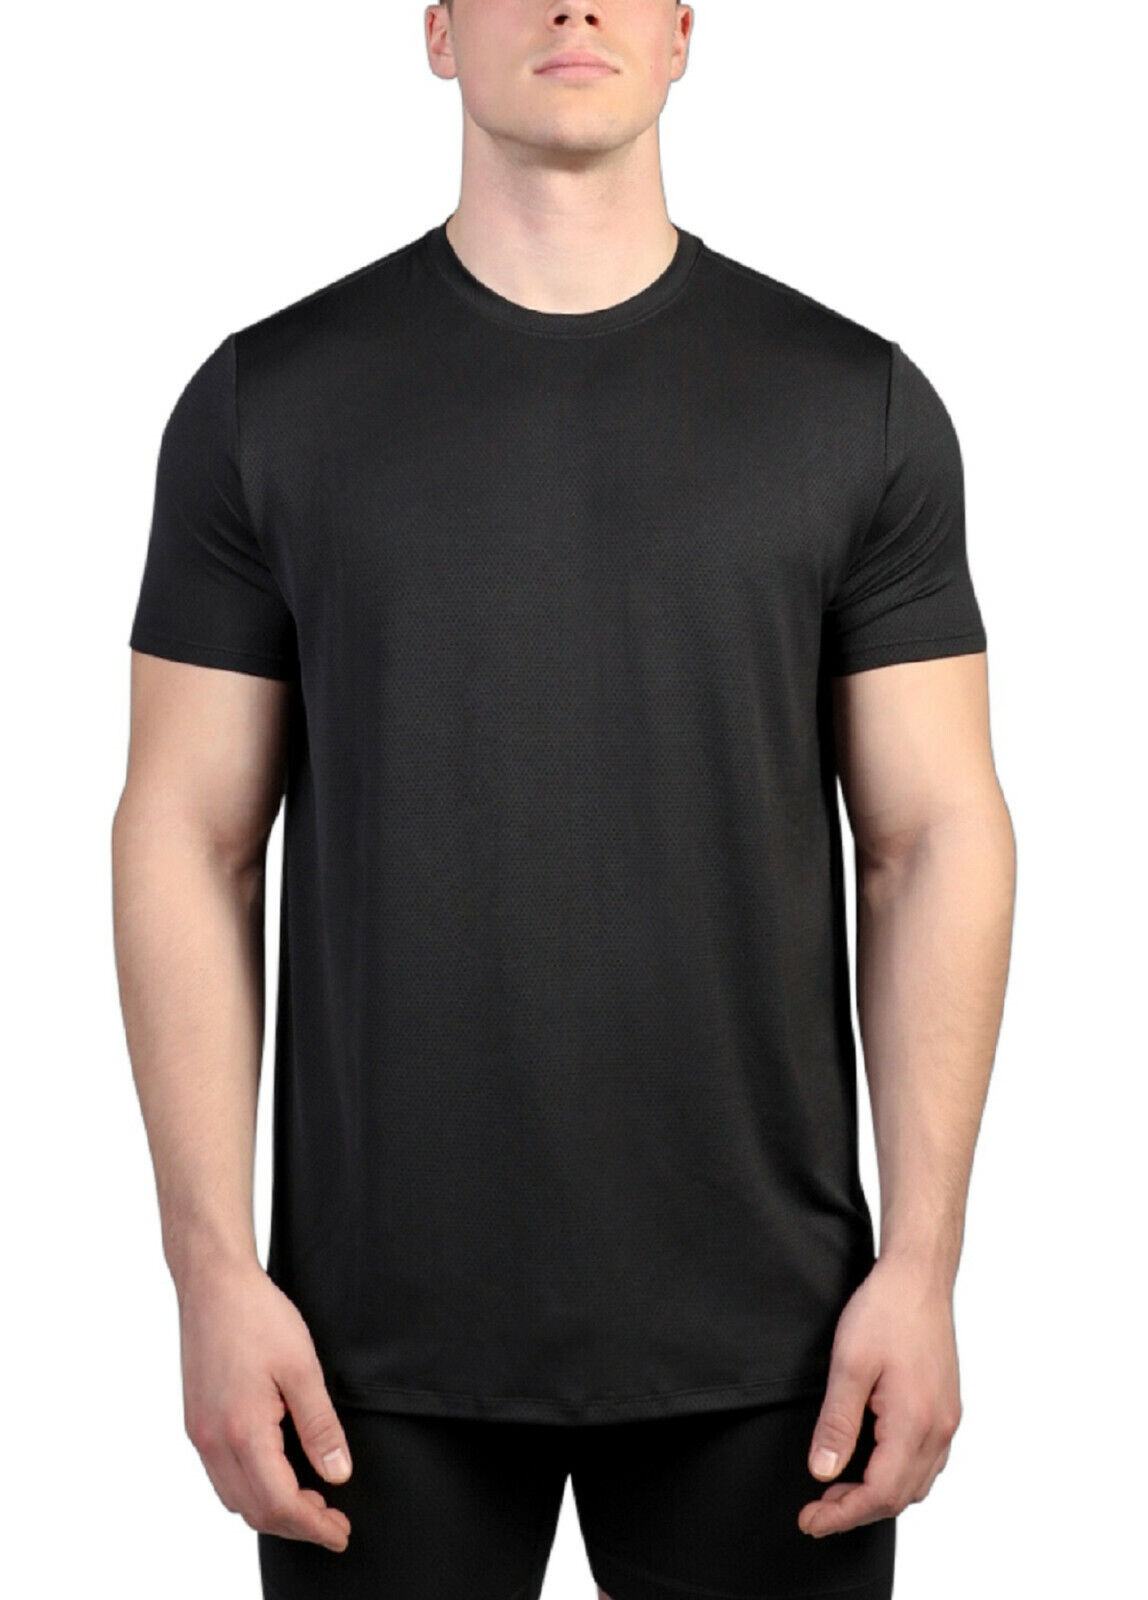 NEW ATHLETIC WORKS MEN'S MESH CREW NECK TEE 2 PK BLACK GRAY WICKING SIZE S Clothing, Shoes & Accessories